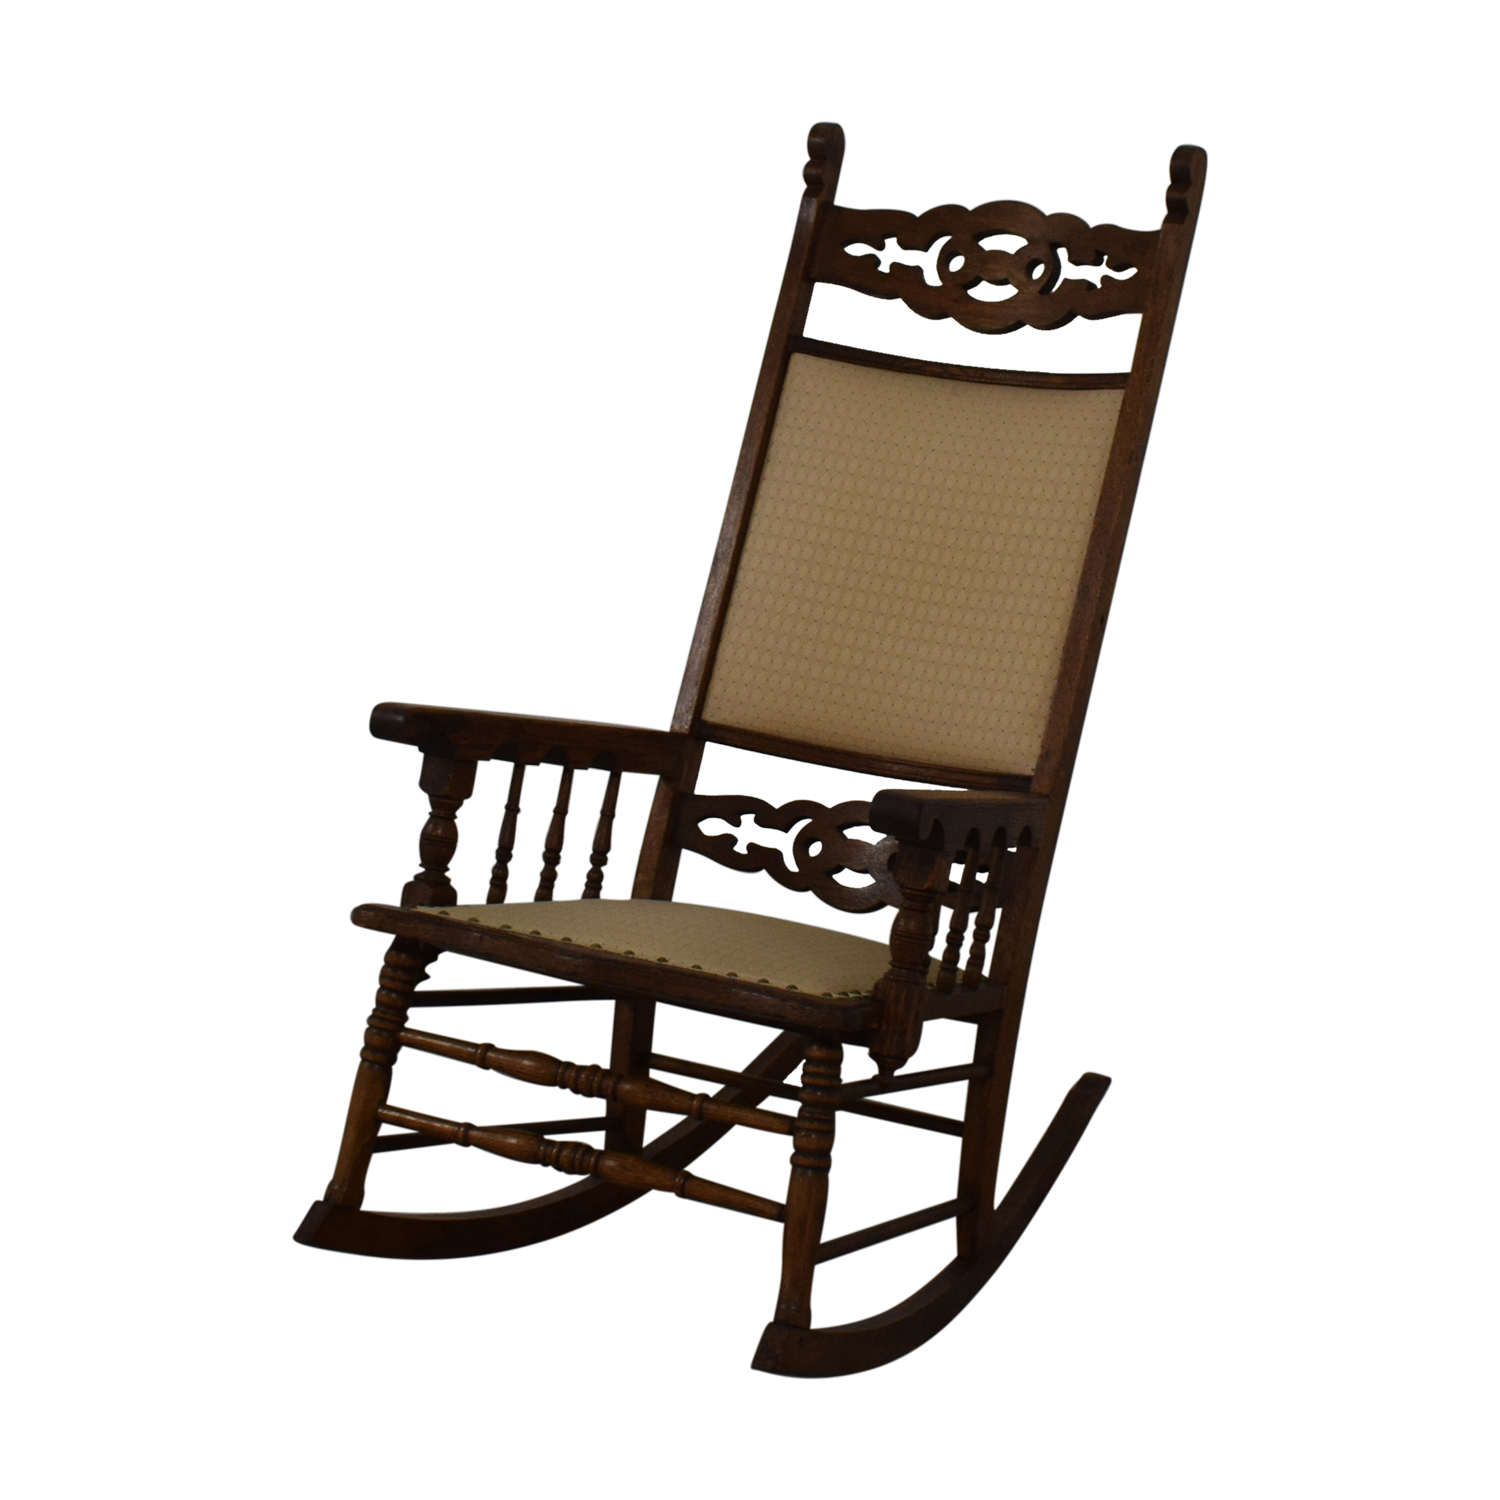 Rustic Rocking Chair on sale